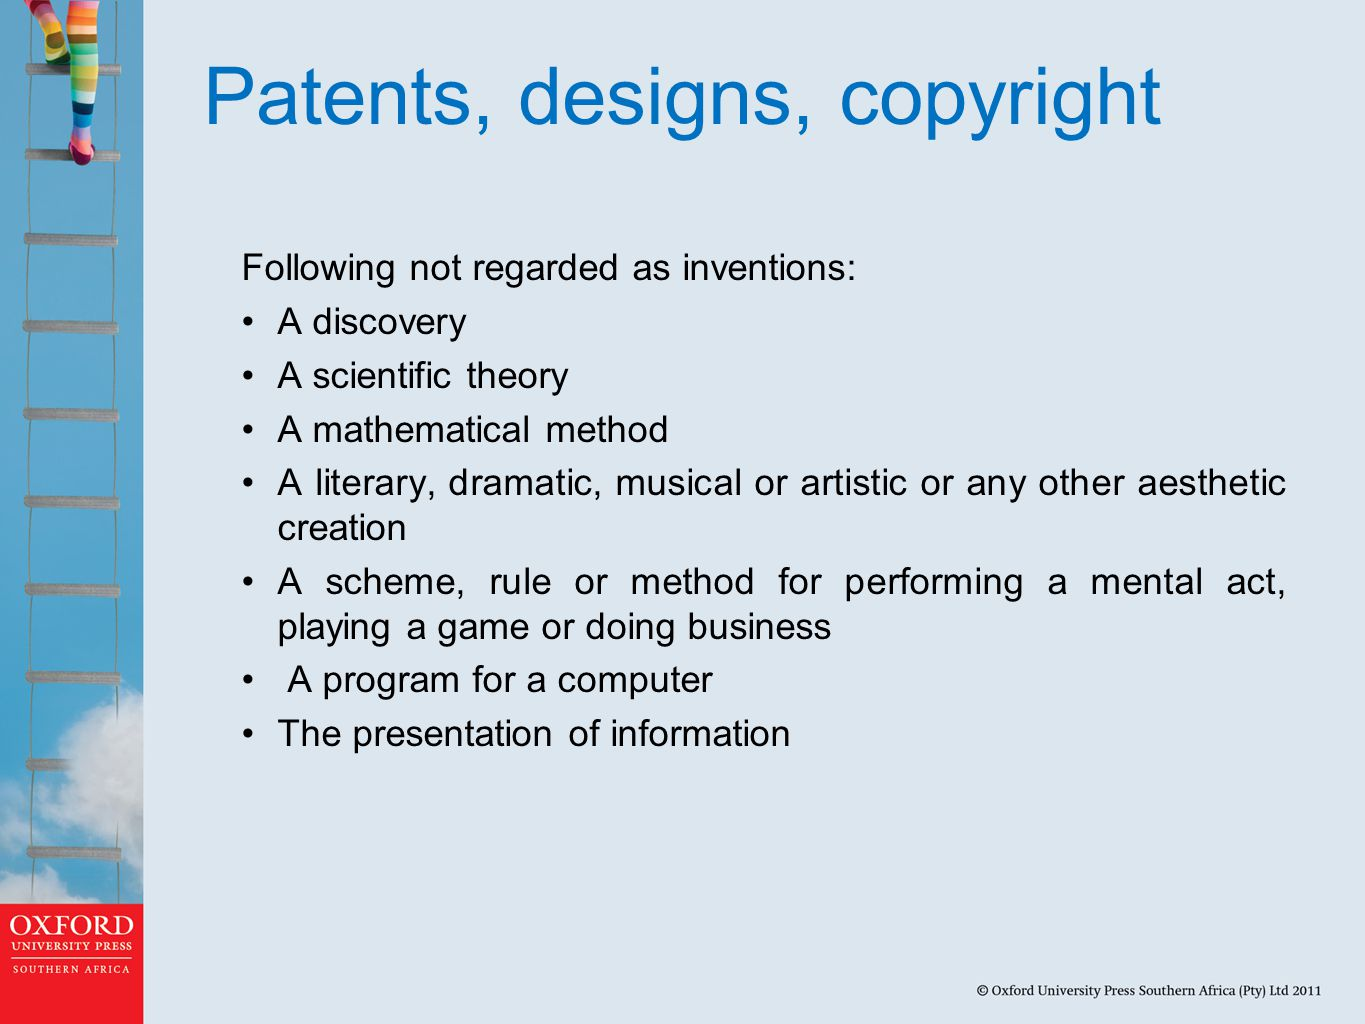 Patents, designs, copyright Following not regarded as inventions: A discovery A scientific theory A mathematical method A literary, dramatic, musical or artistic or any other aesthetic creation A scheme, rule or method for performing a mental act, playing a game or doing business A program for a computer The presentation of information